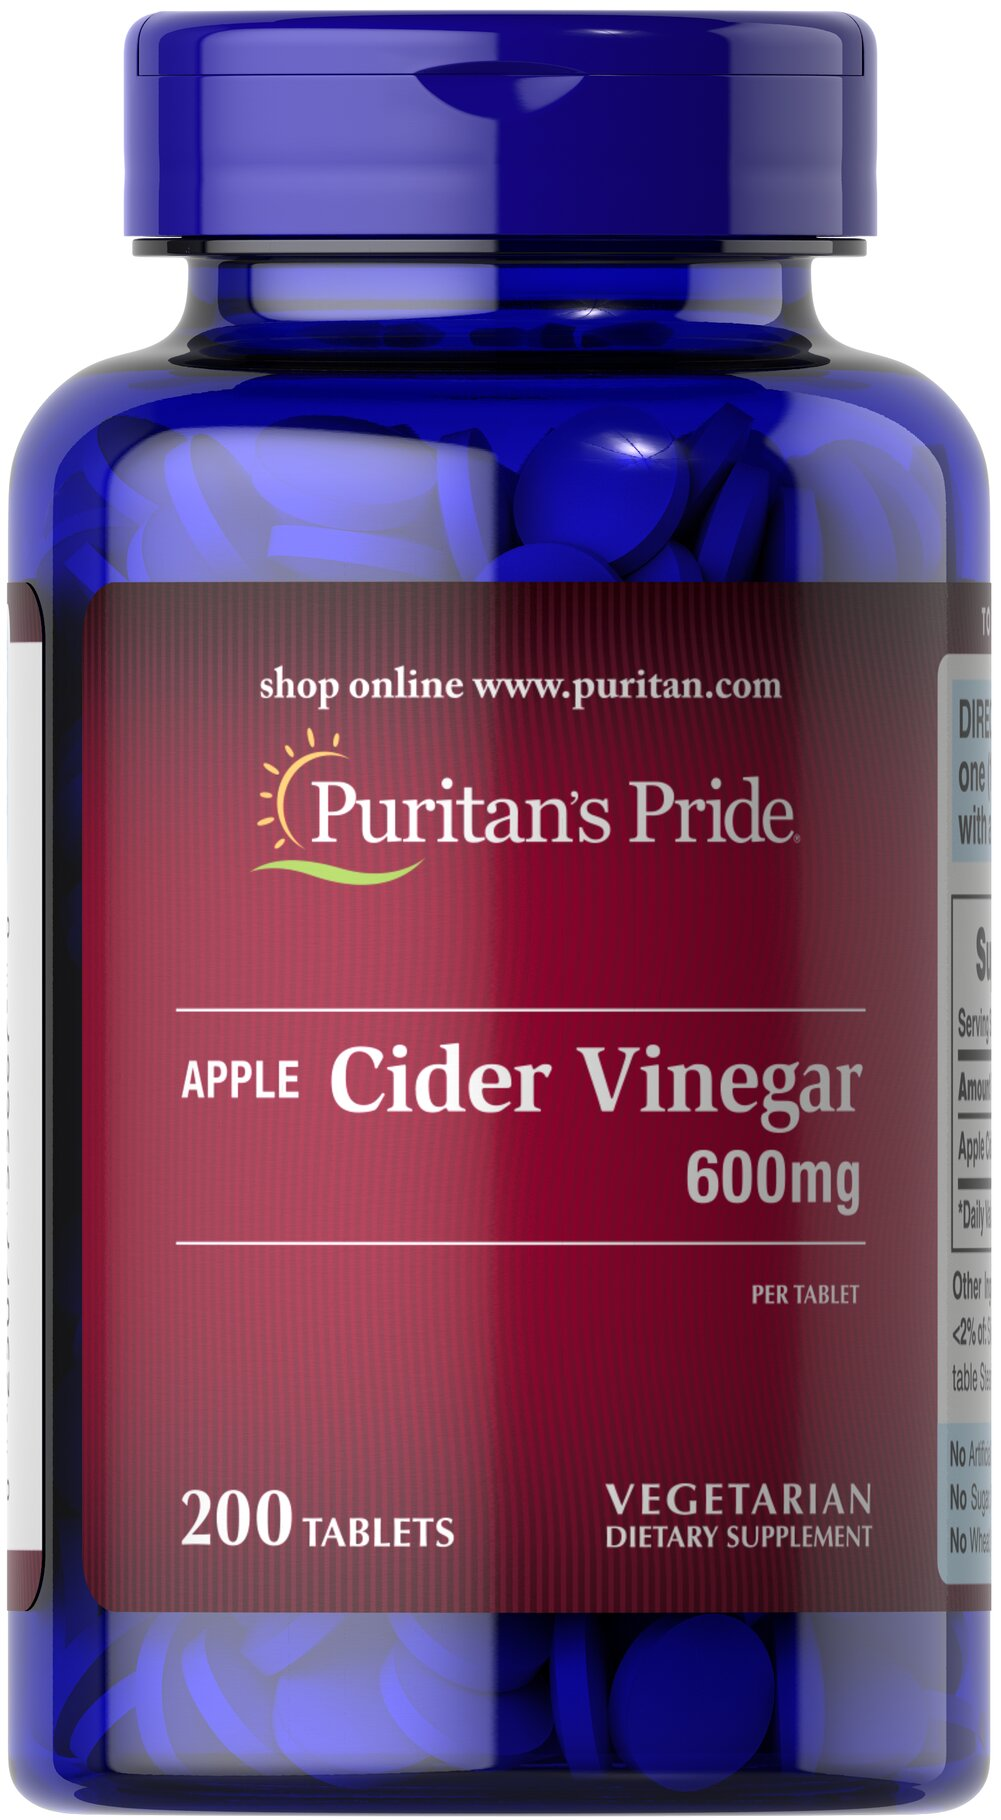 Apple Cider Vinegar 600 mg Thumbnail Alternate Bottle View